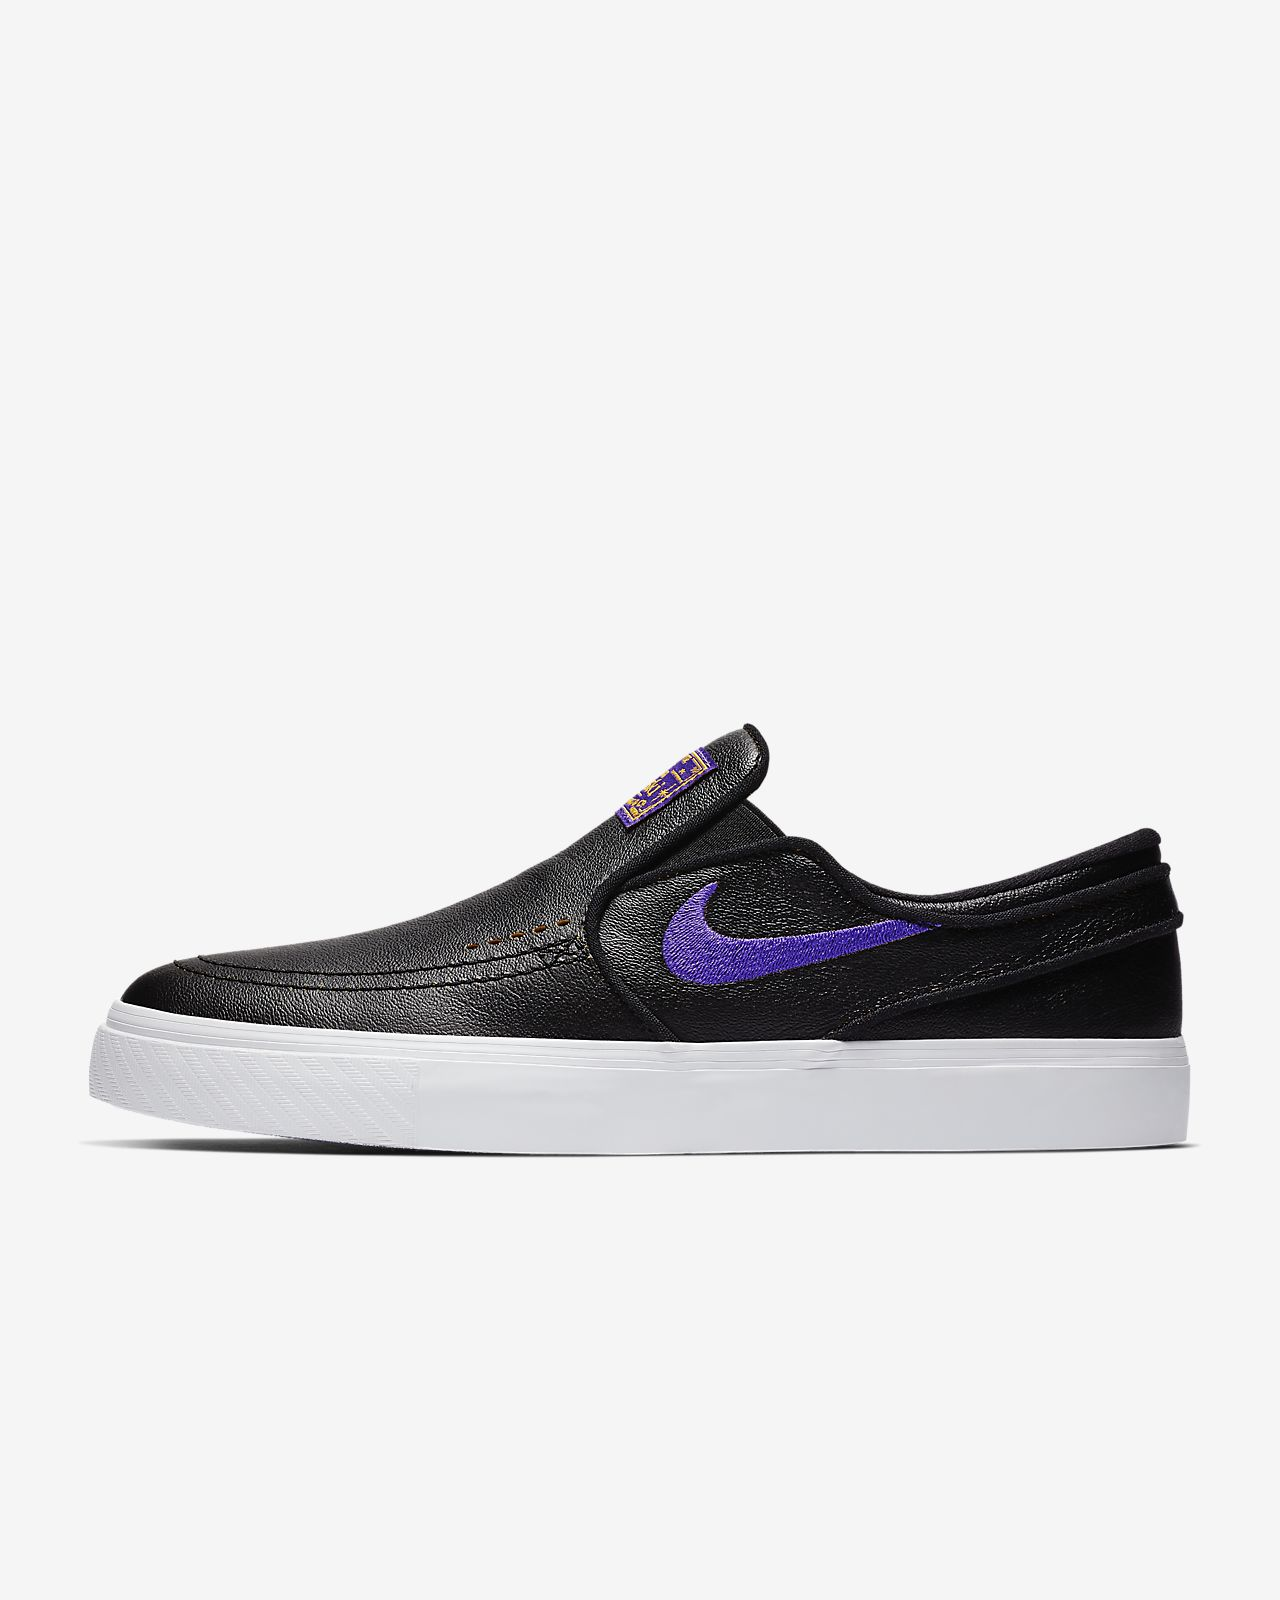 Nike SB Zoom Janoski Slip NBA Men's Skate Shoe